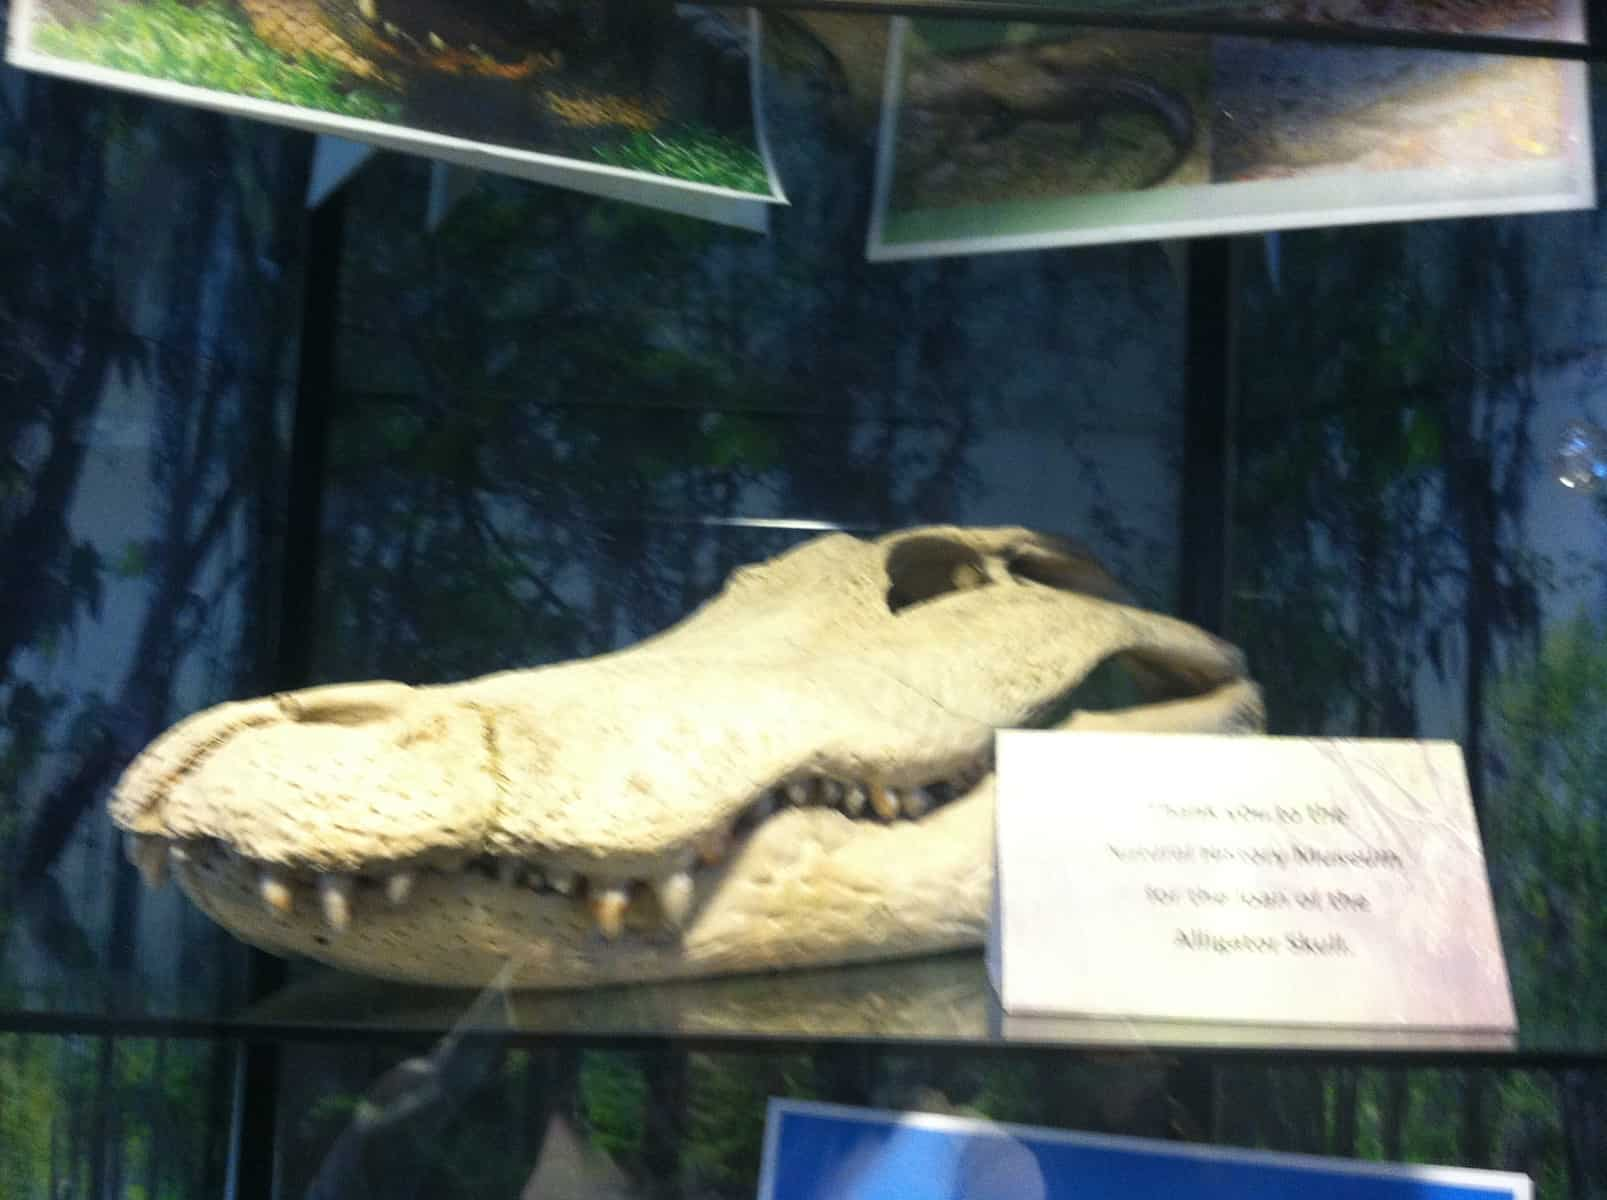 Alligator skull from the UI Museum of Natural History